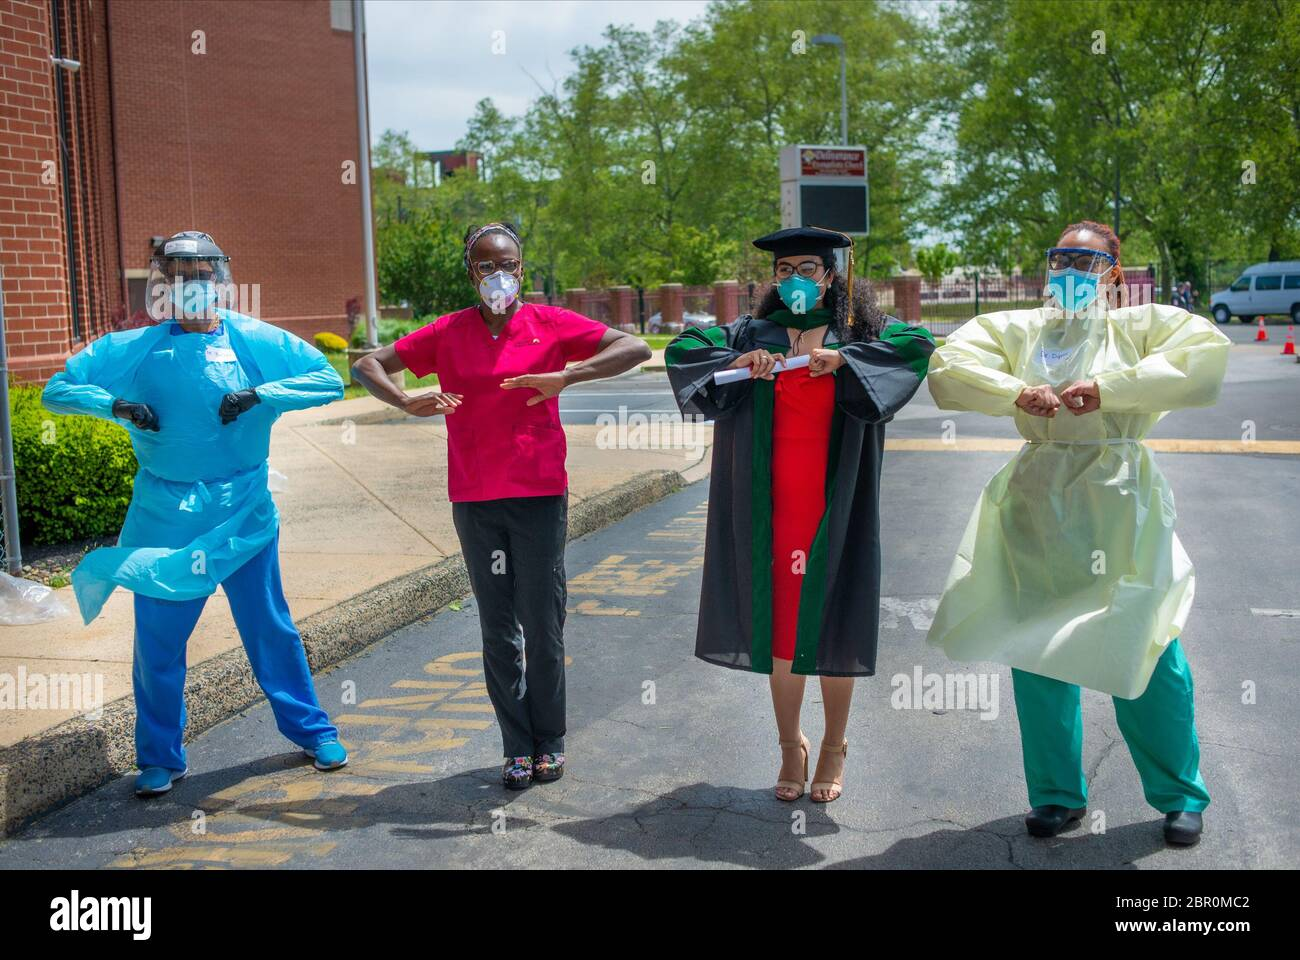 Philadelphia, Pennsylvania, USA. 19th May, 2020. Dr. Ala Stanford (2nd from left), a pediatric surgeon at Abington Jefferson Health and newly graduated Dr. Natalie Anne Gonzalez (3rd from left) from PCOM along with two other doctors pose for a photo during a break in testing patients for COVID-19 Tuesday, May 19, 2020 at Deliverance Evangelistic Church in Philadelphia. Since very early on in the pandemic, Dr. Ala Stanford and her organization, Black Doctors COVID-19 Consortium, has been taking COVID-19 testing for free into the African American communities inland surrounding Philadelphia. Cred Stock Photo